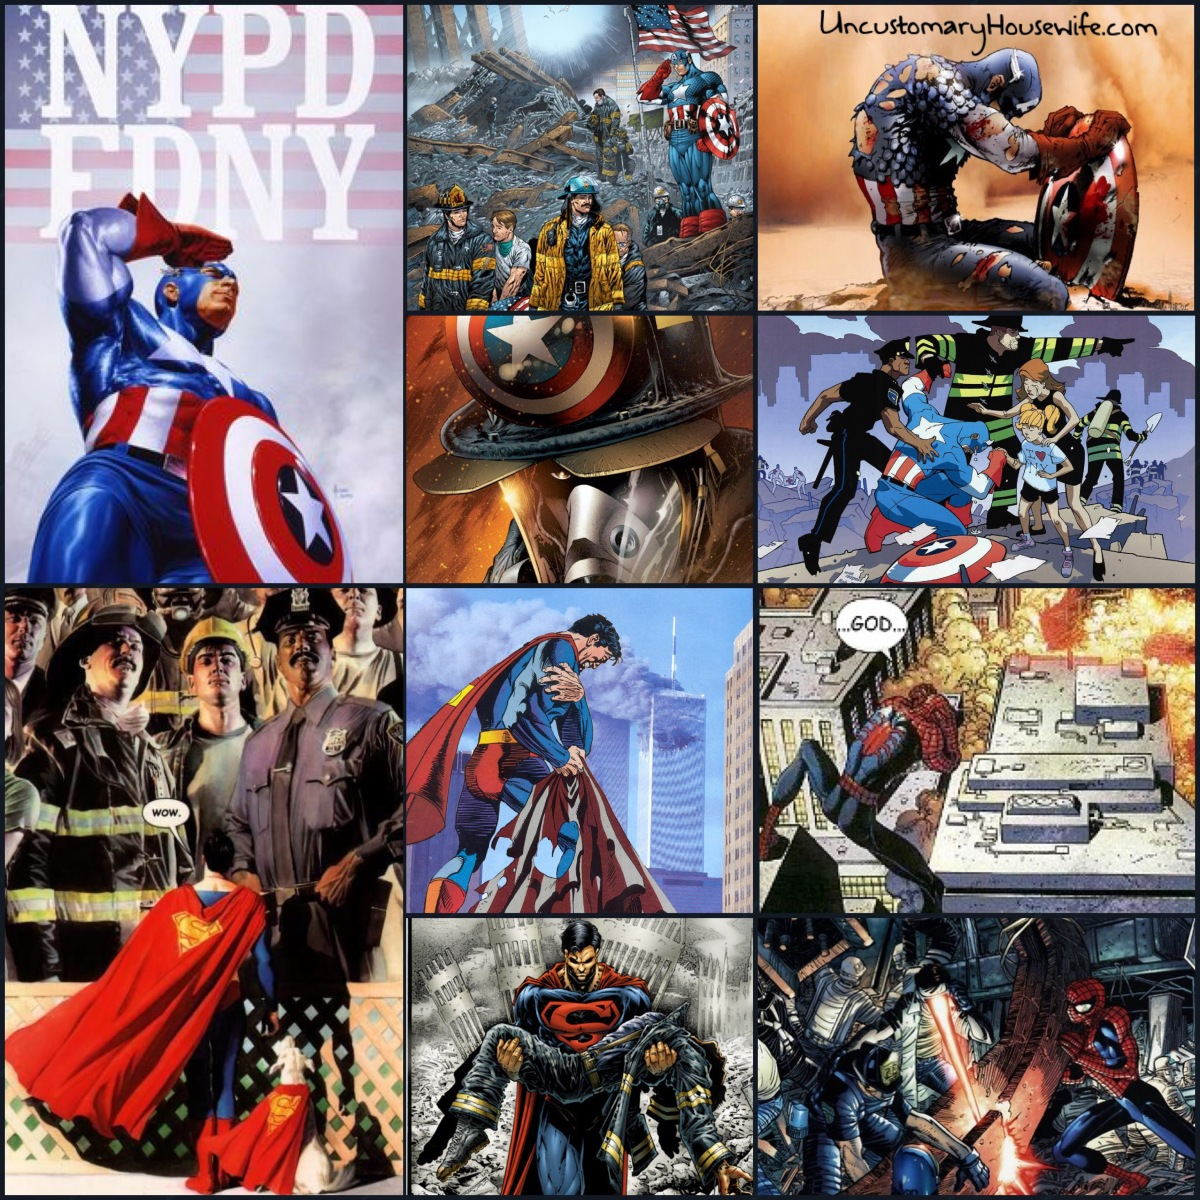 9/11/01 - Heroes Stronger Than Superman -Never Forget